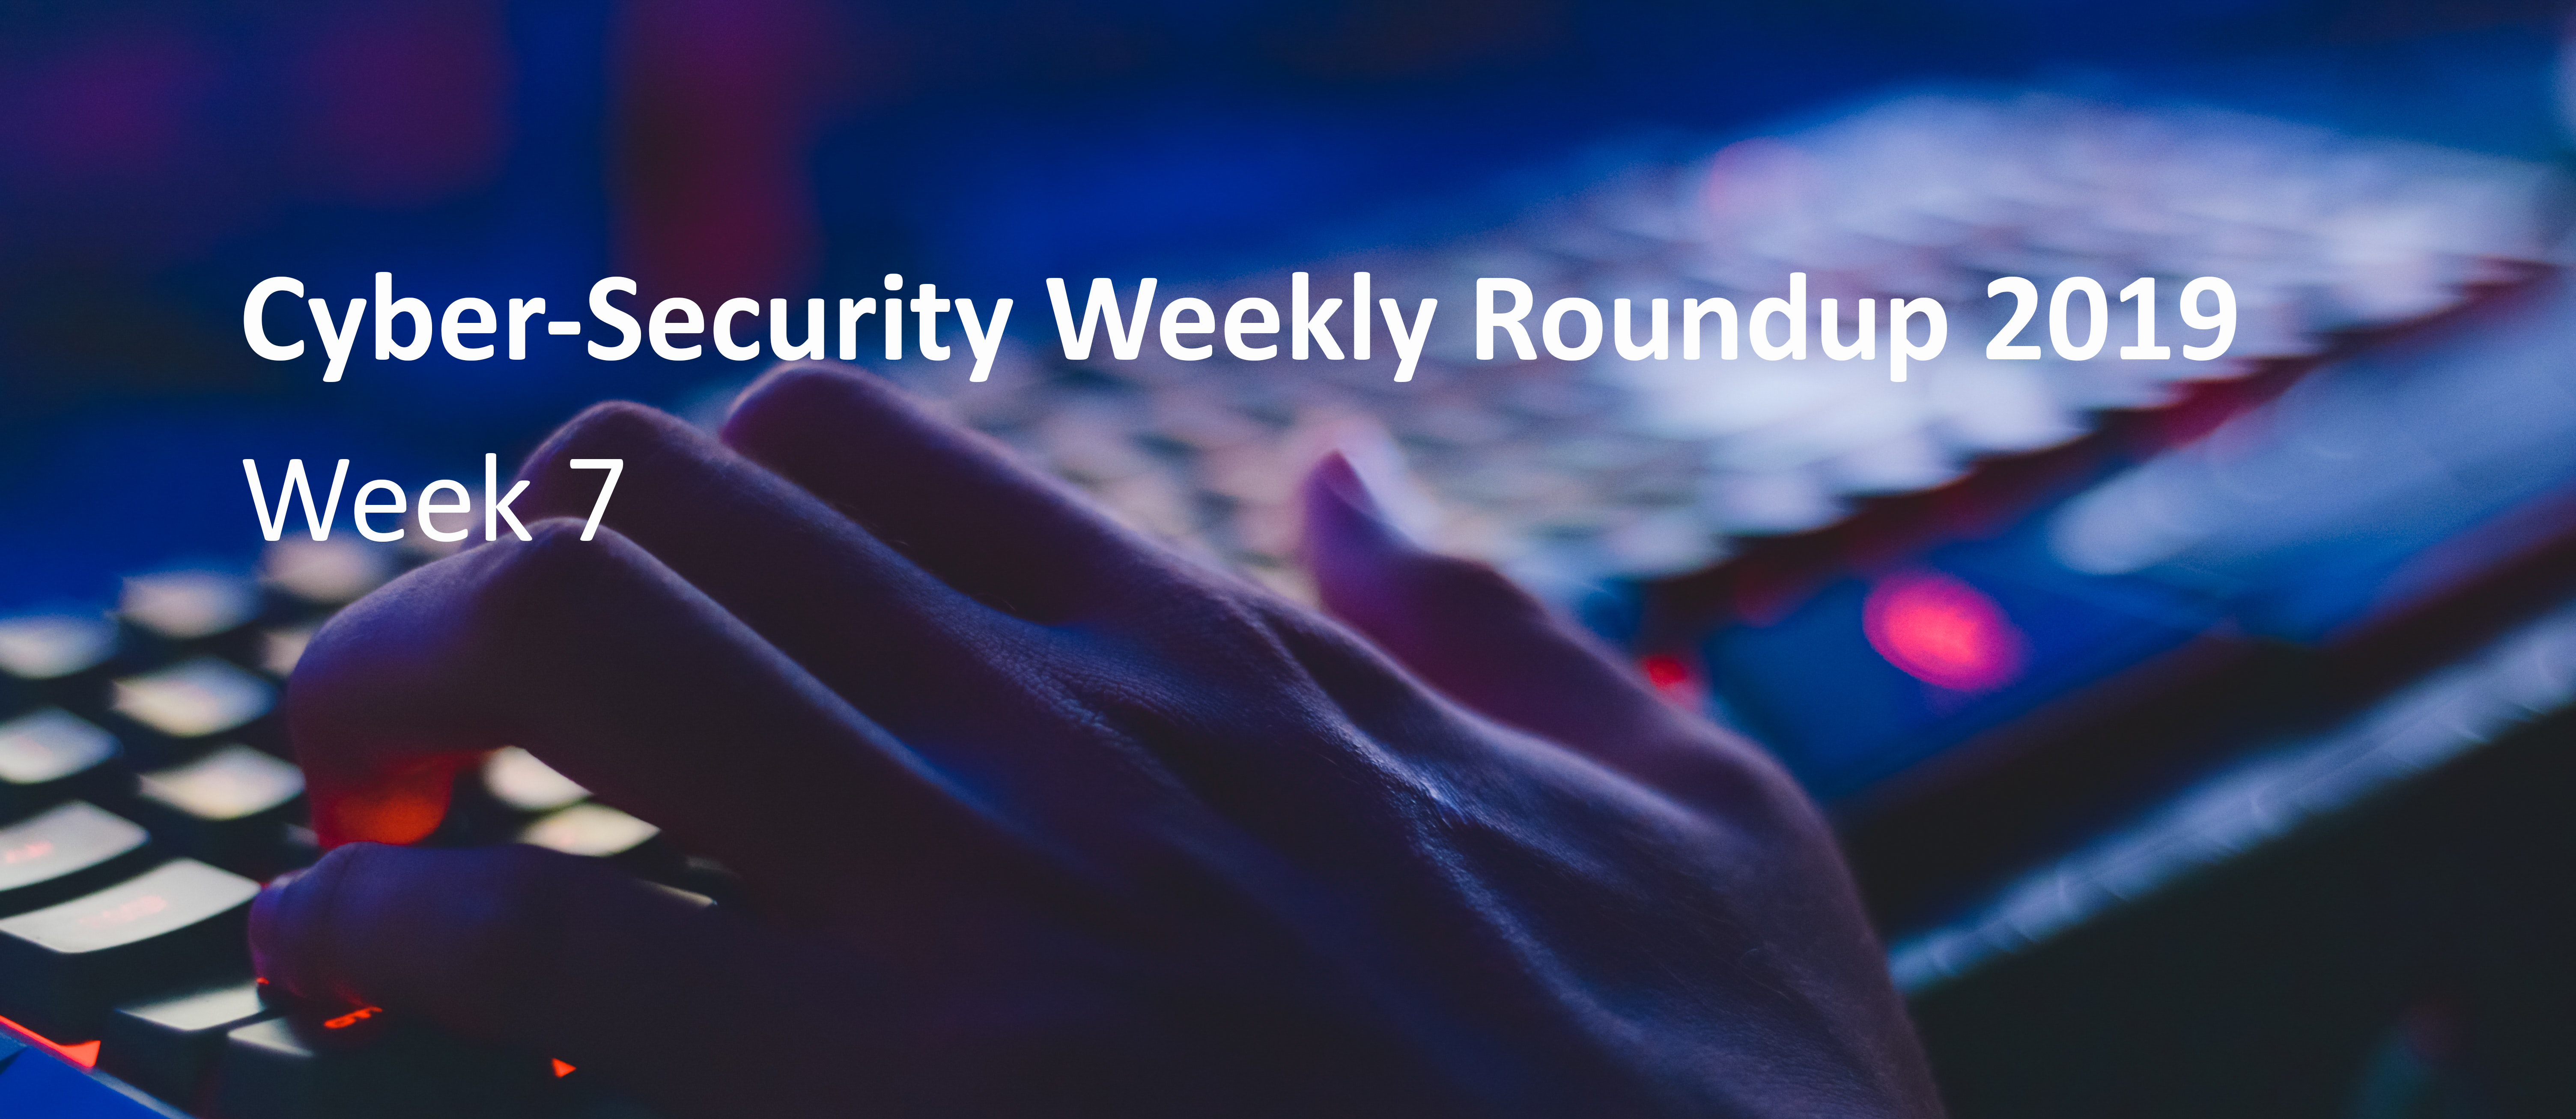 Cyber Attack Weekly Round Up wk 7